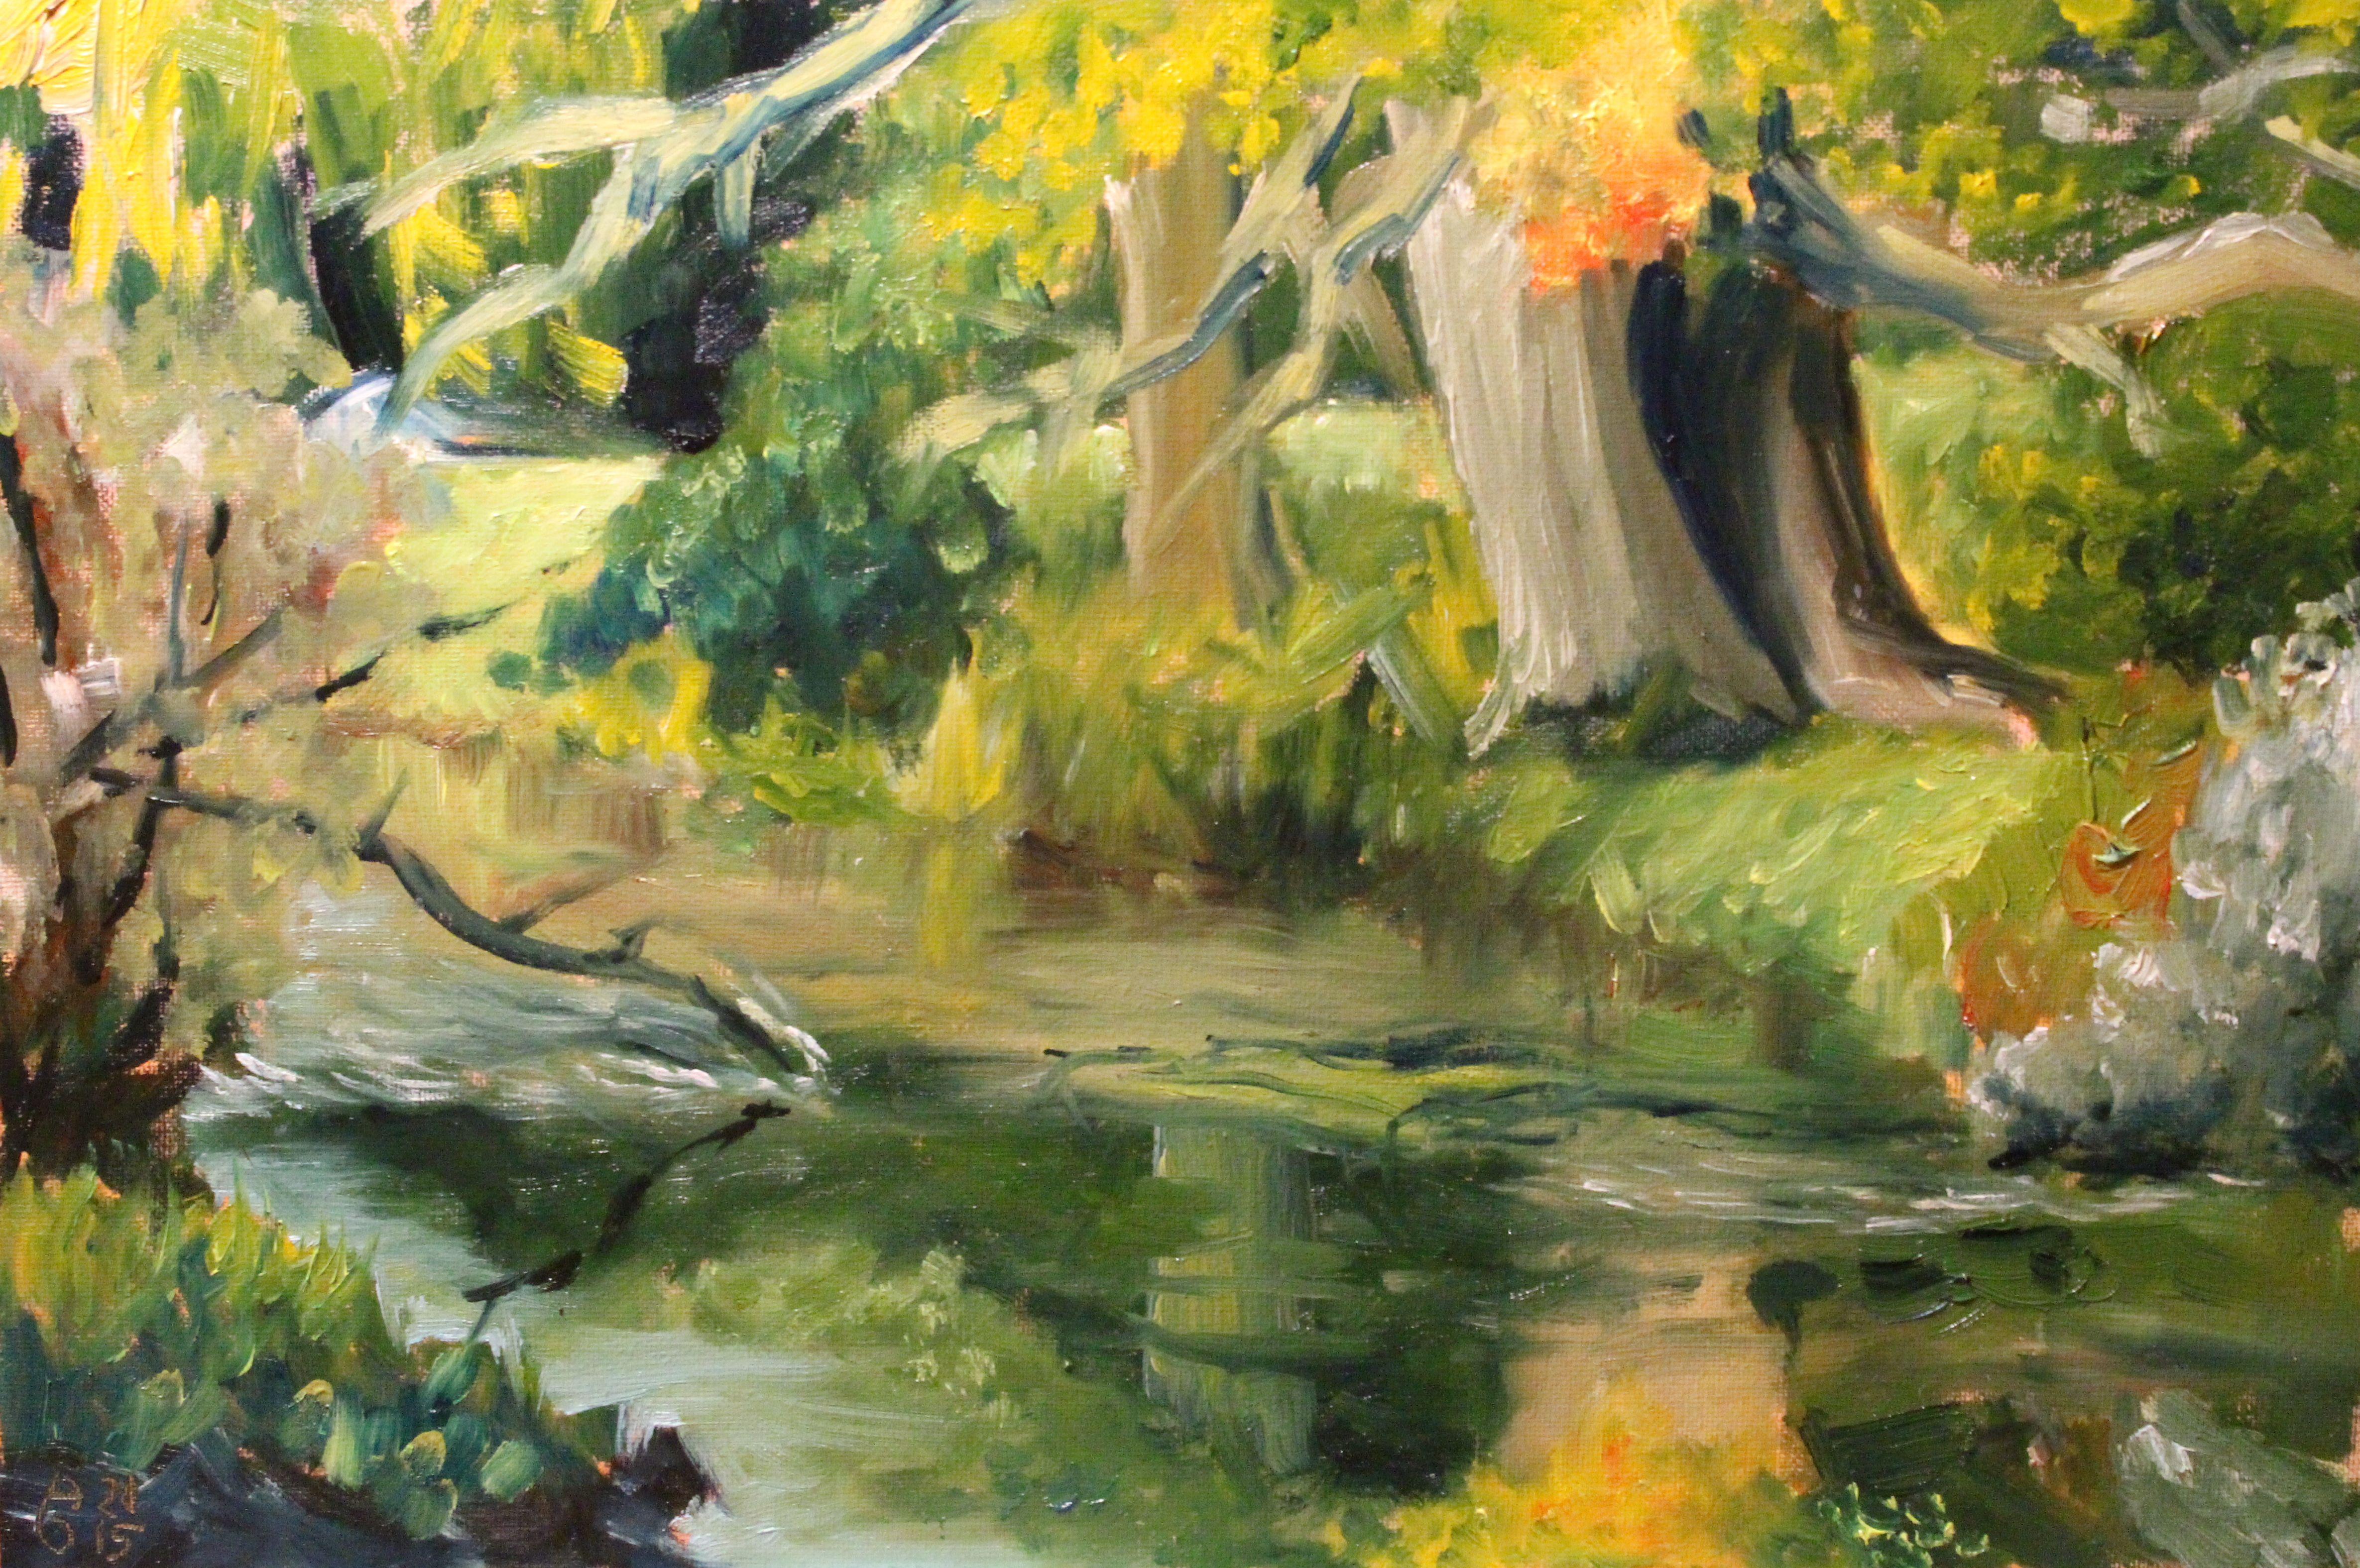 "Stromabwärts || Downstream. Öl auf MDF-Platte, 20 x 30 cm. Oil on MDF board, 7.9"" x 11.8""."